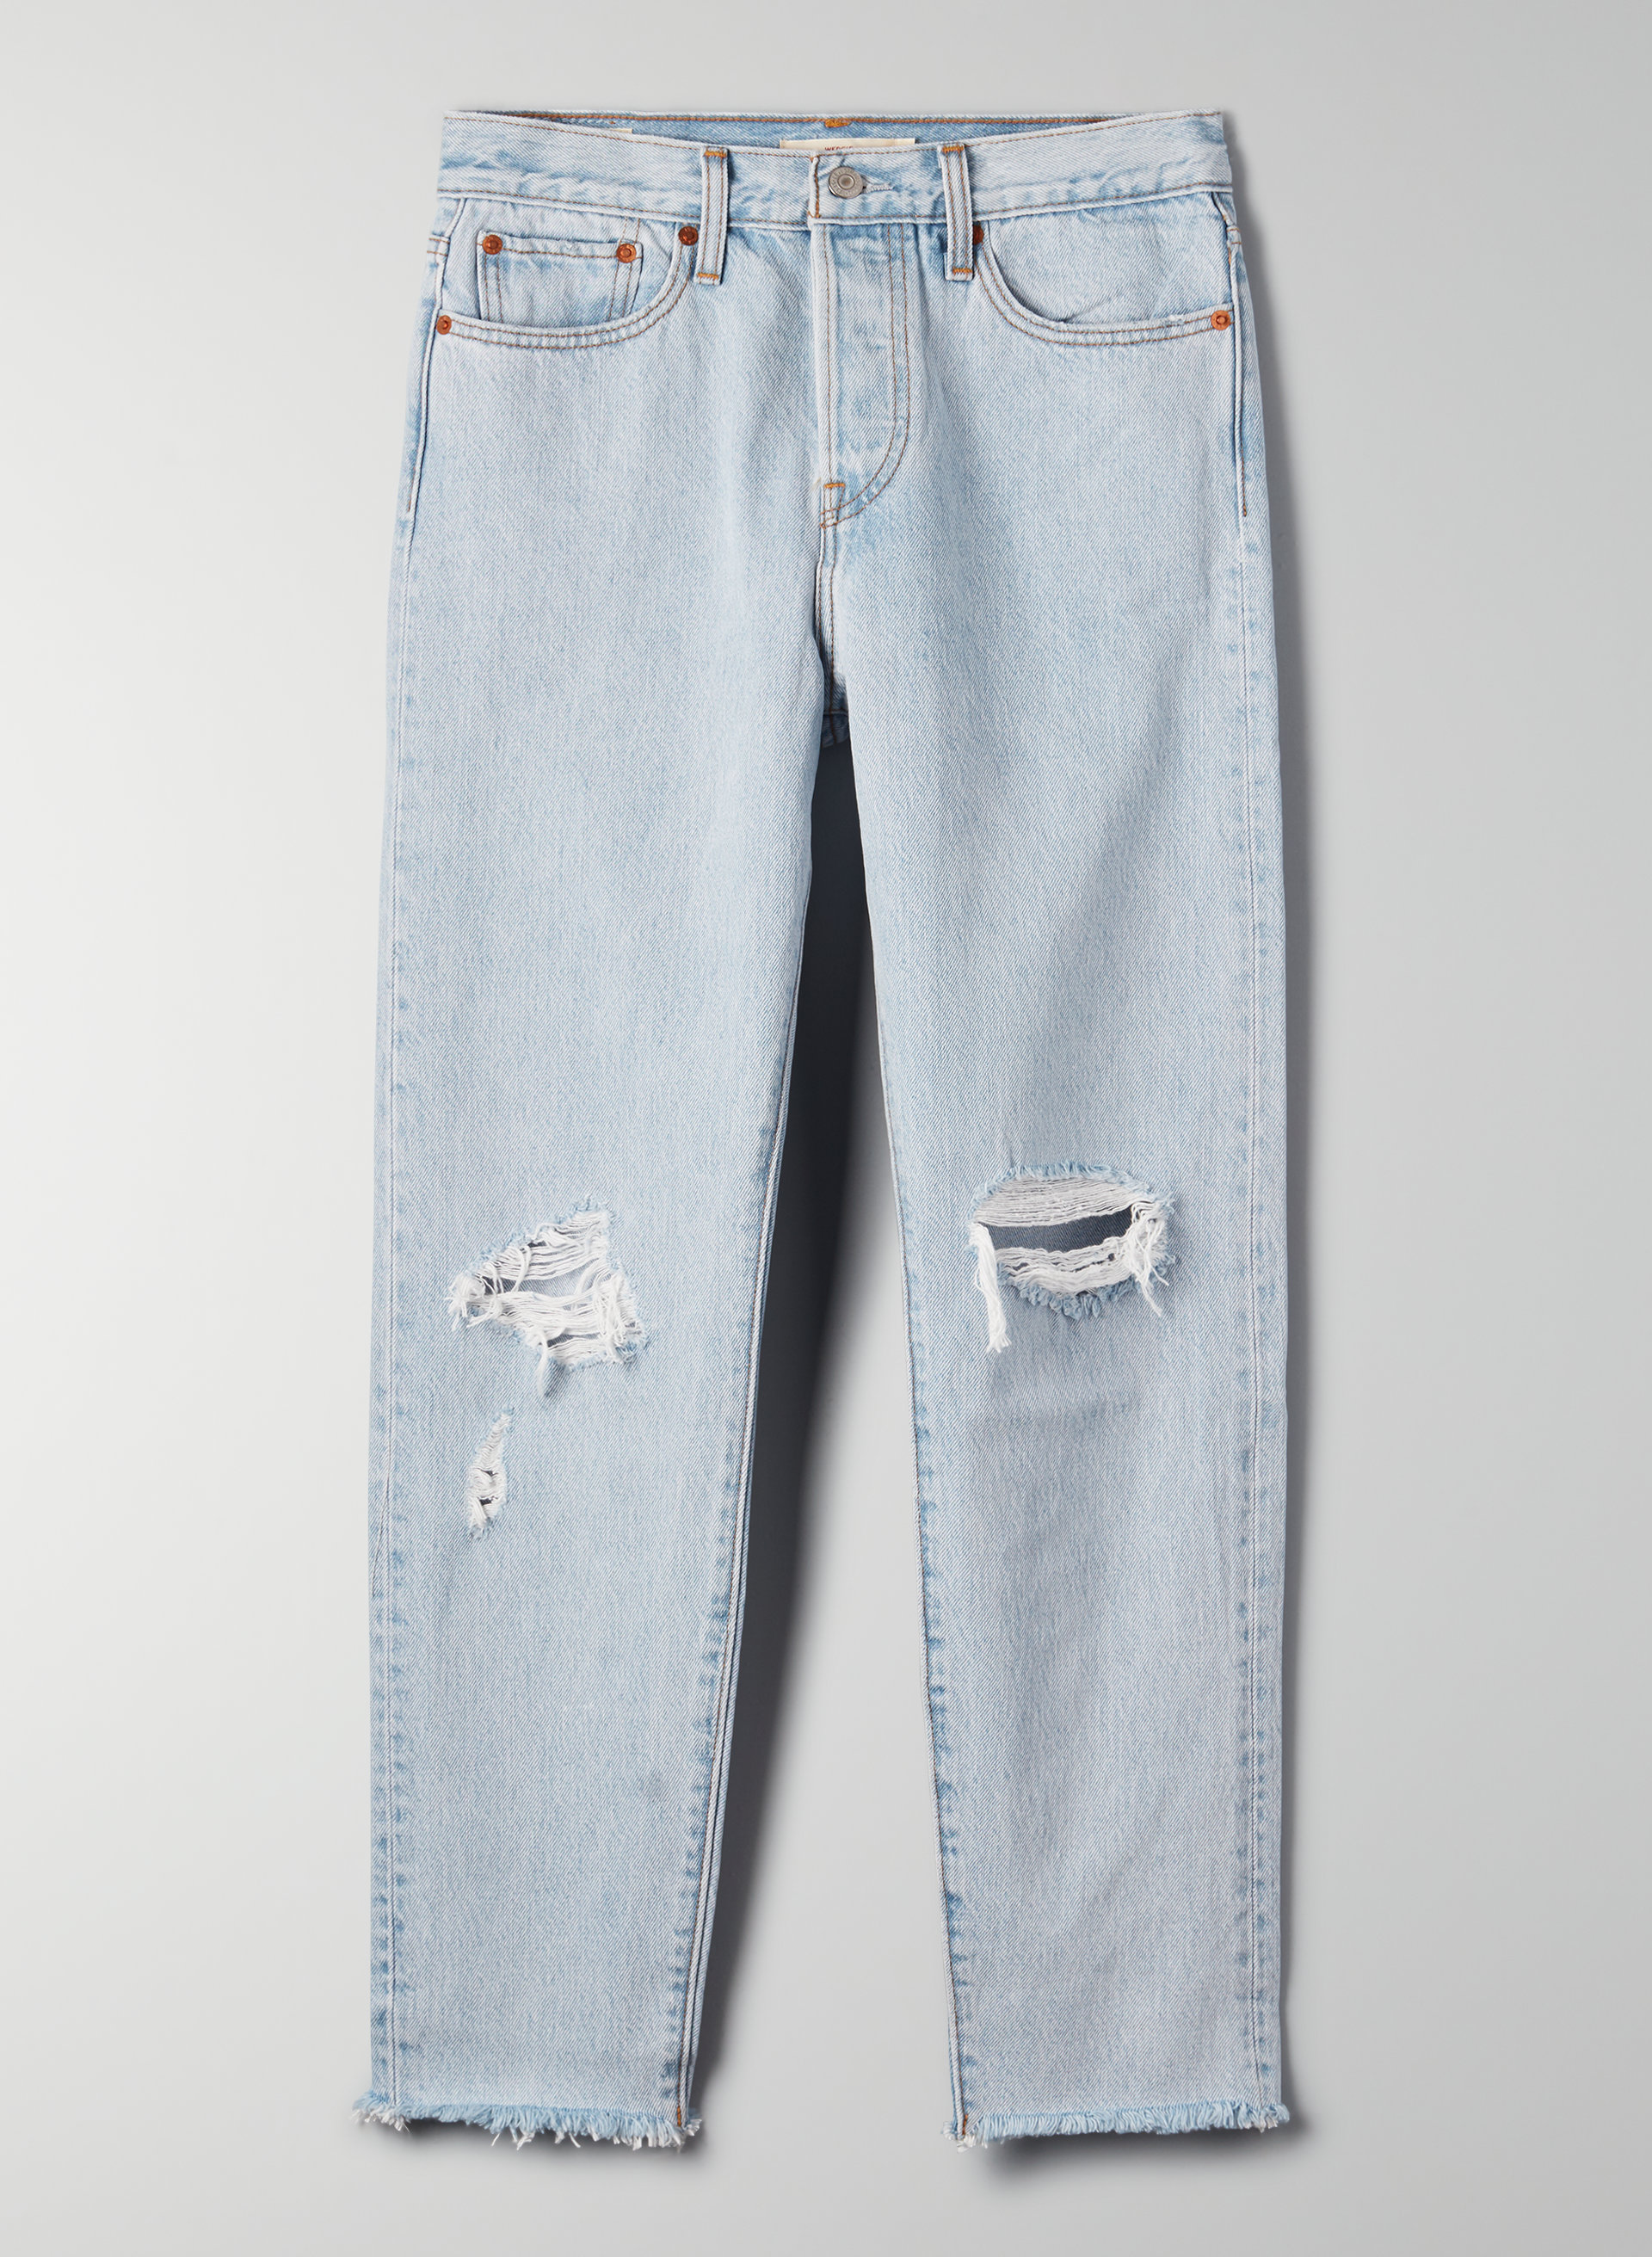 c6599b3251f021 WEDGIE ICON - Cropped, high-waisted ripped jean